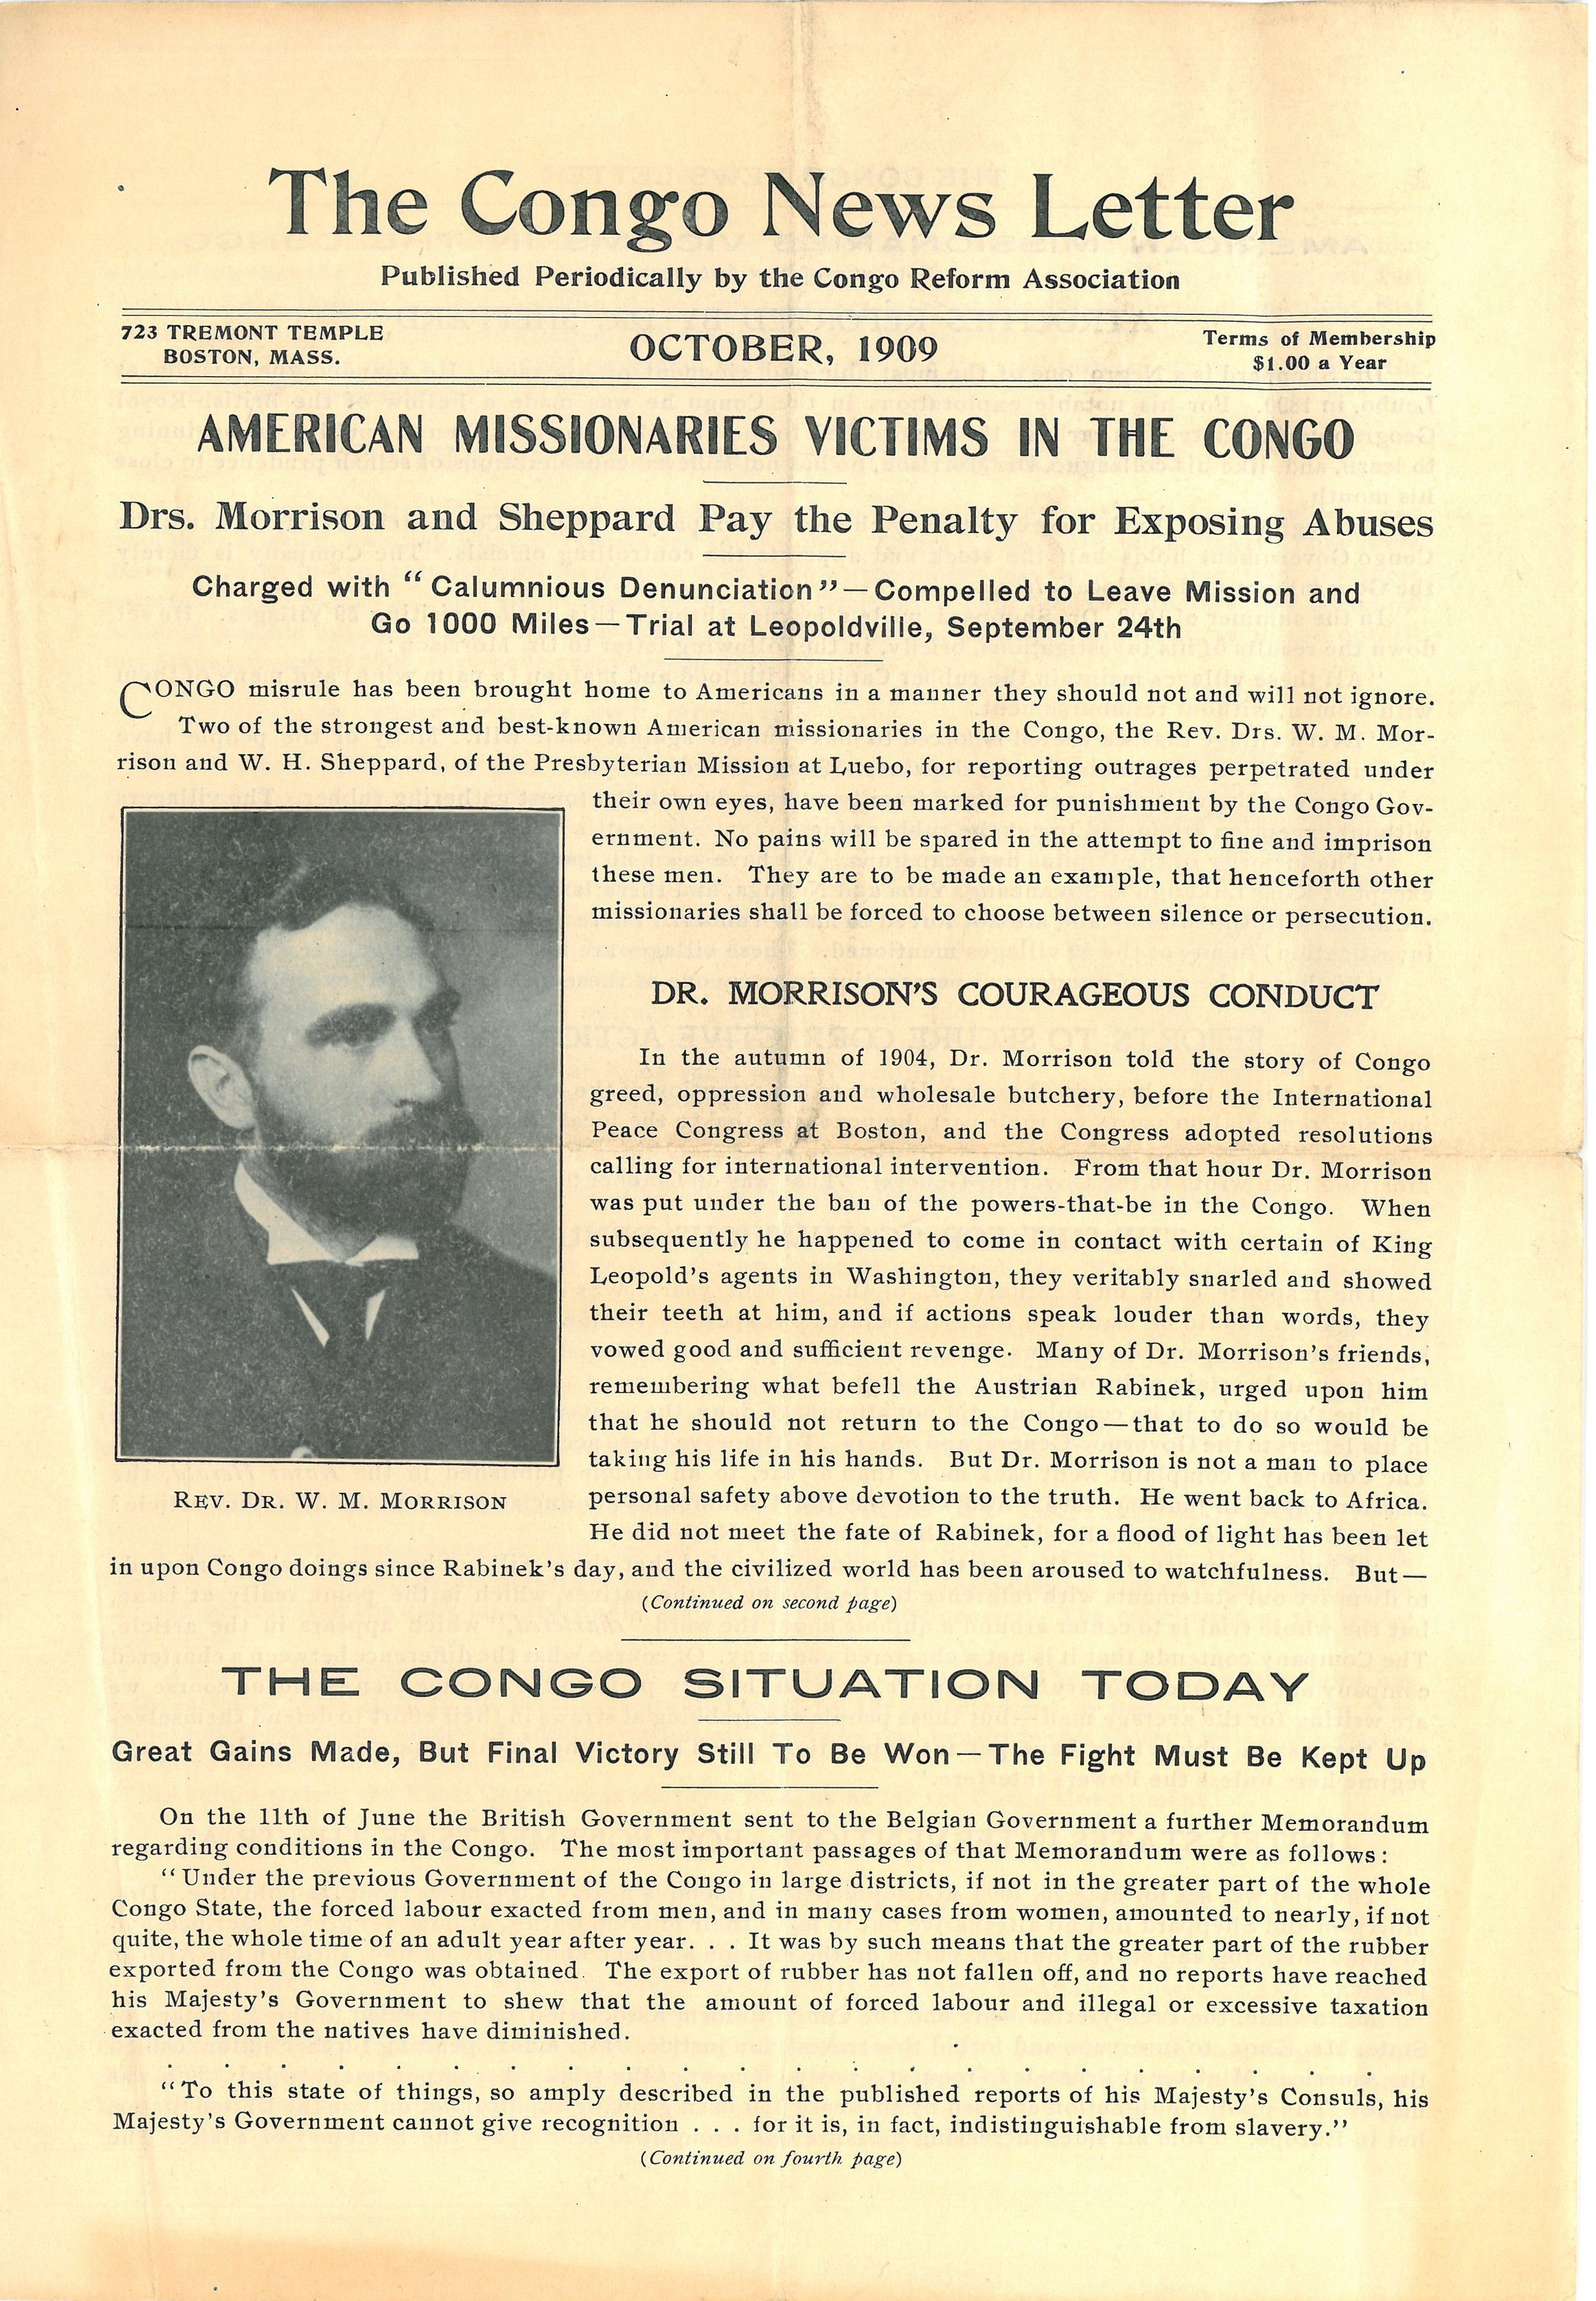 The Congo News Letter